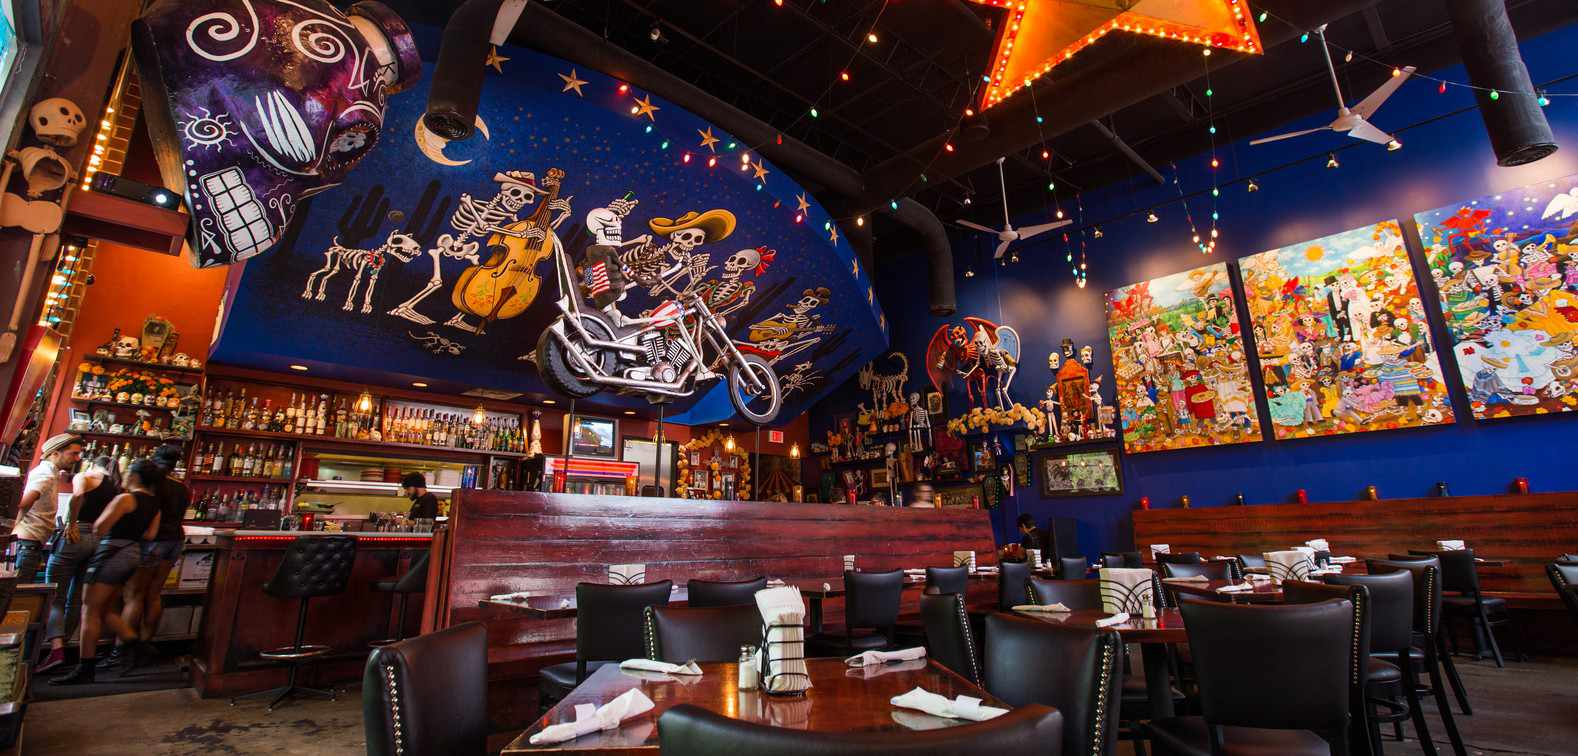 Interior of Bone garden cantina with dia de los muertos murals and paintings on the walls